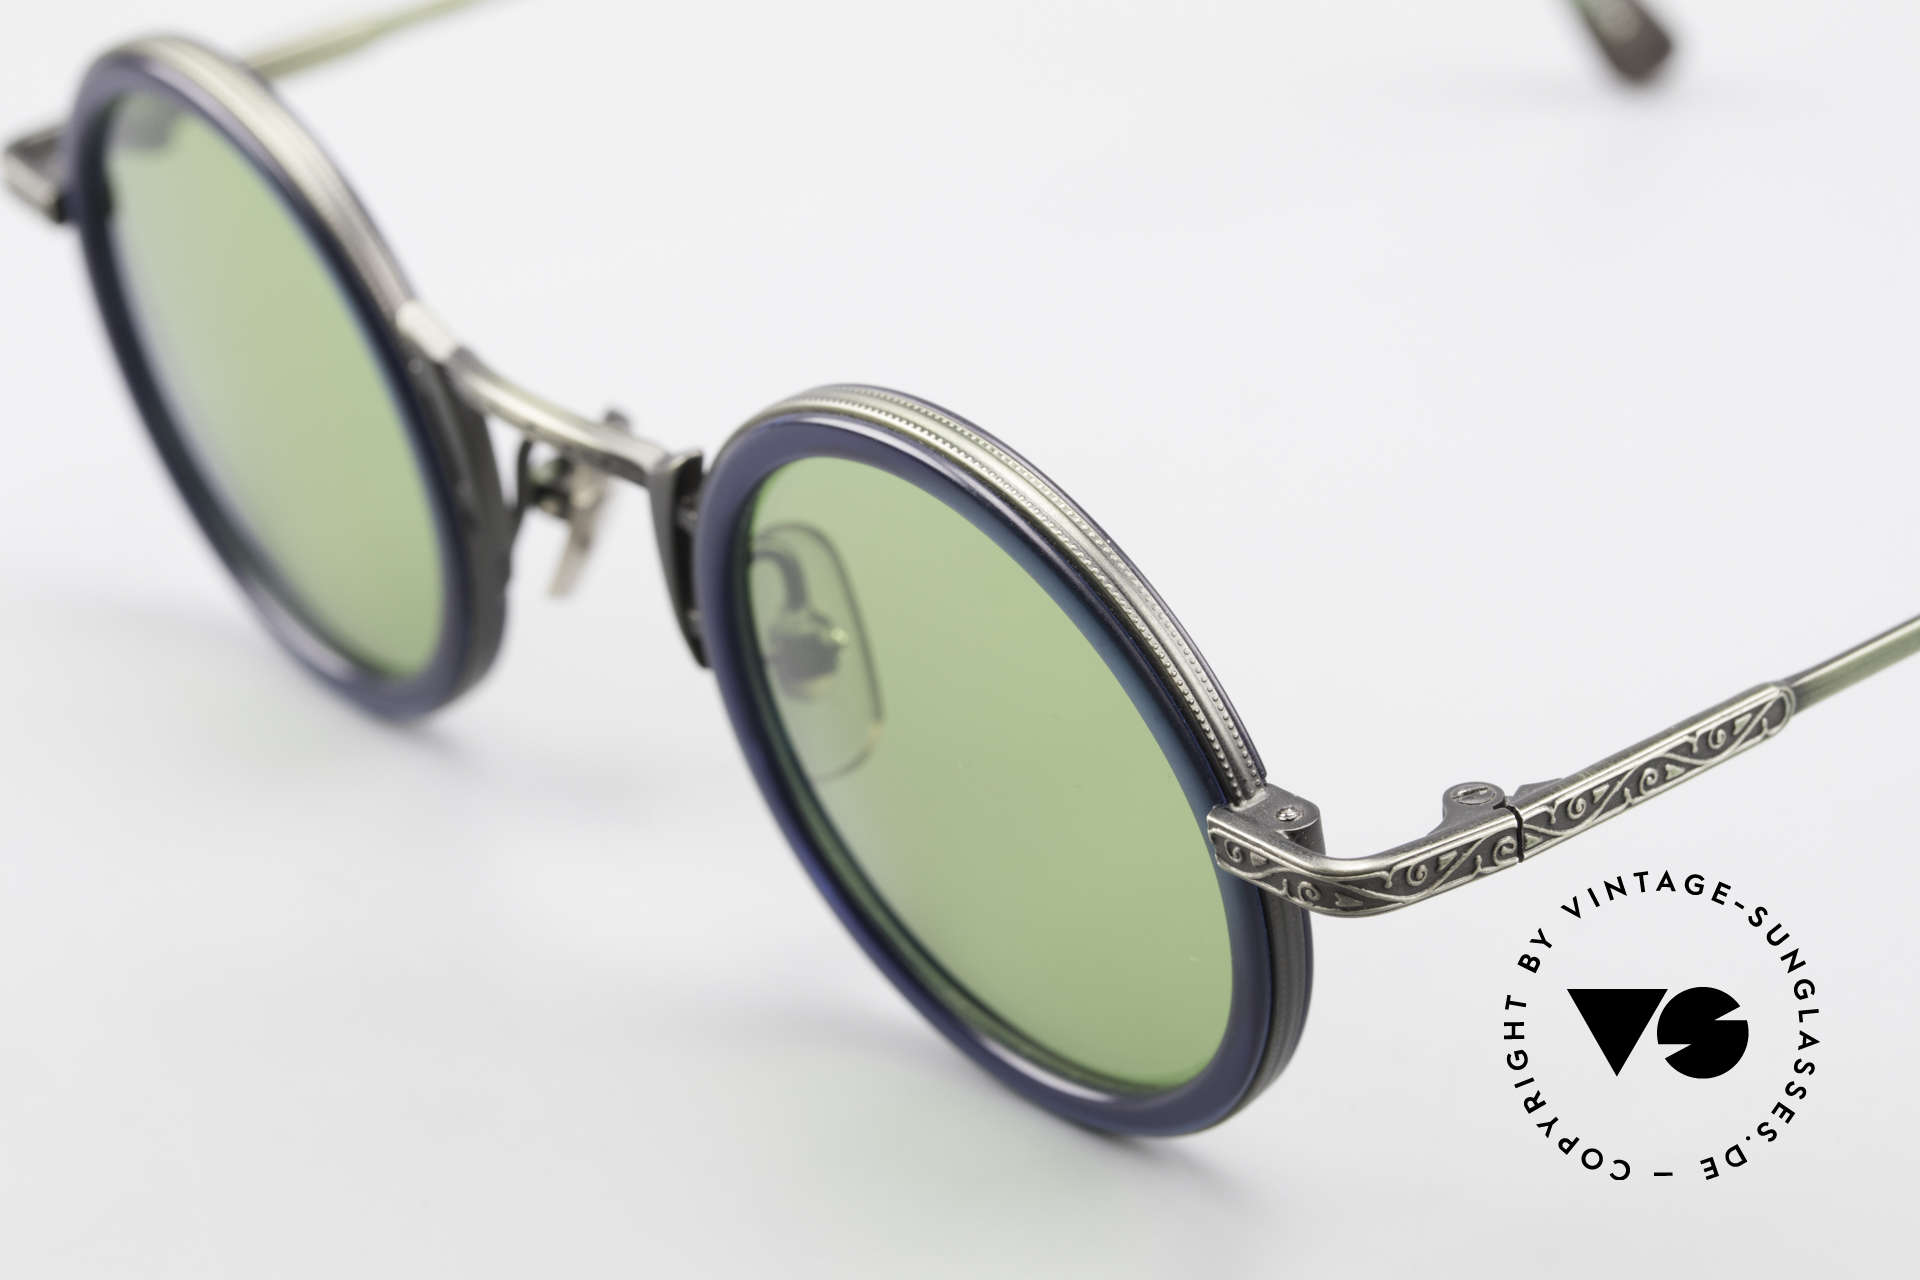 Freudenhaus Domo Round Designer Sunglasses, high-end frame & unique finish (metal shines green), Made for Men